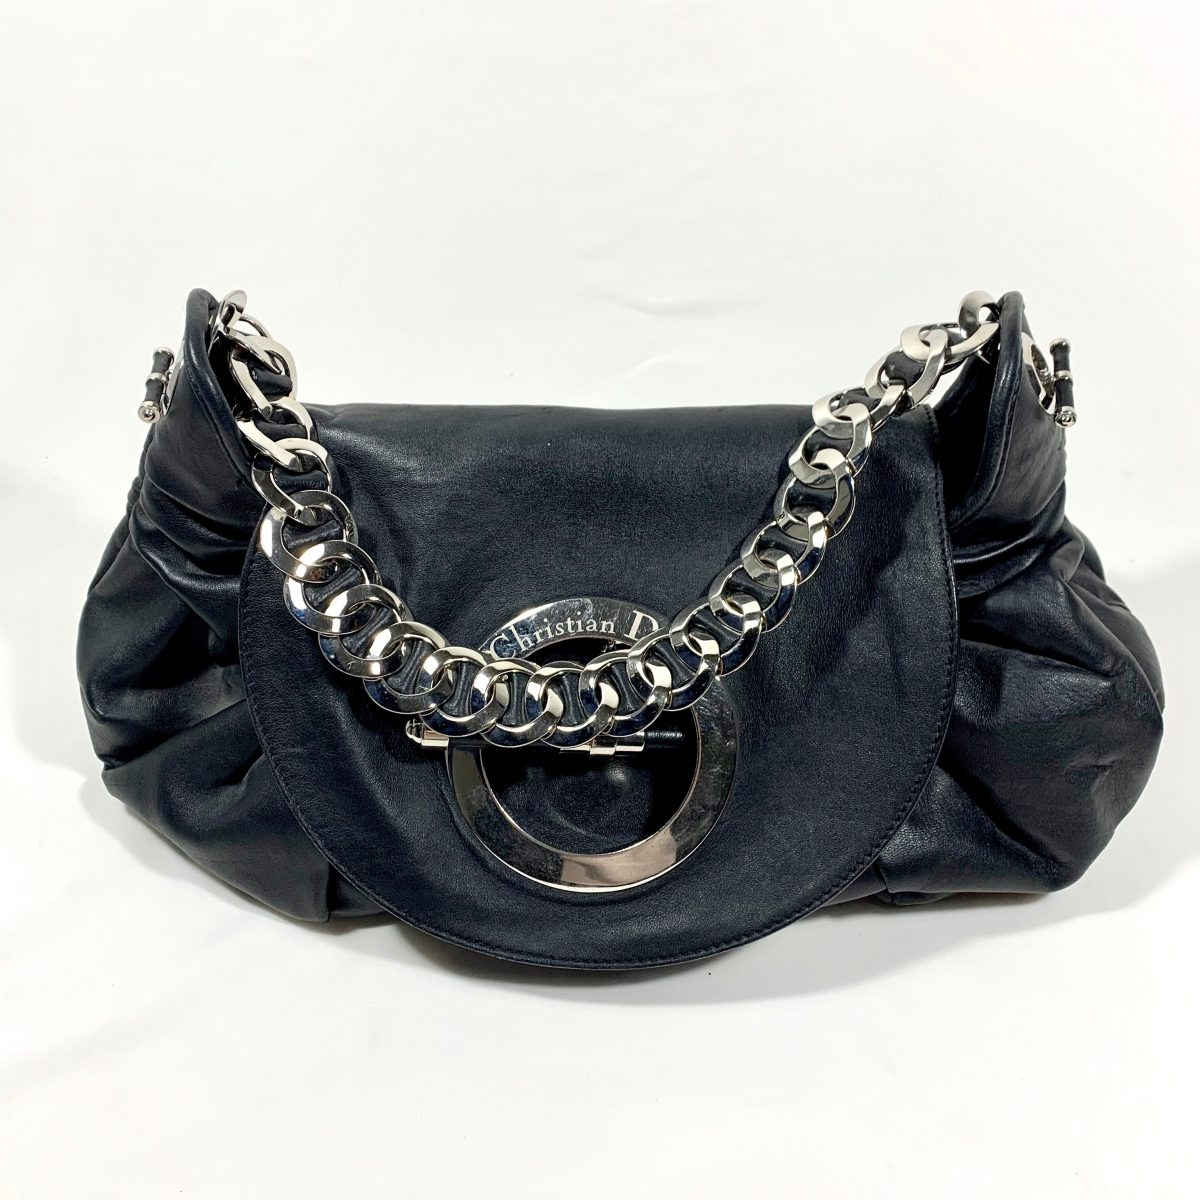 Dior designer shoulder bag